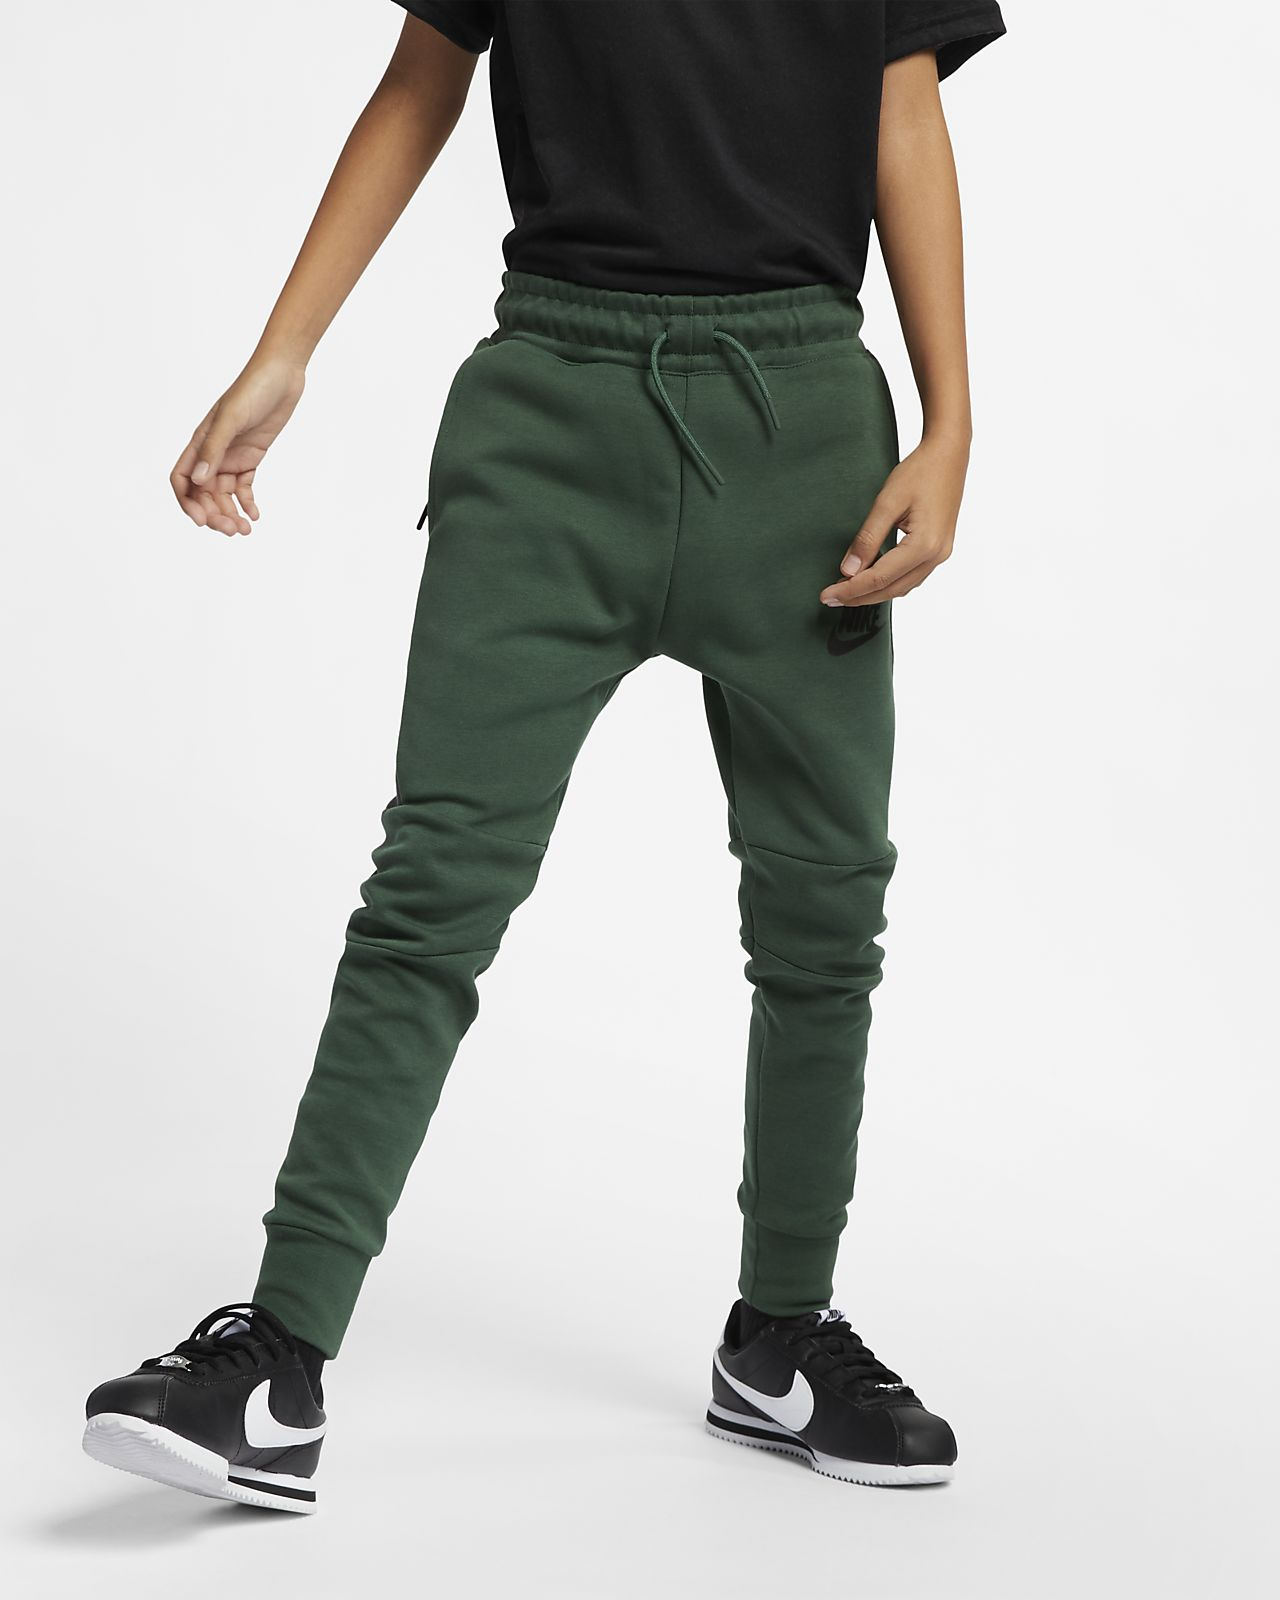 626da84c2c65 Nike Sportswear Big Kids  Tech Fleece Pants. Nike.com